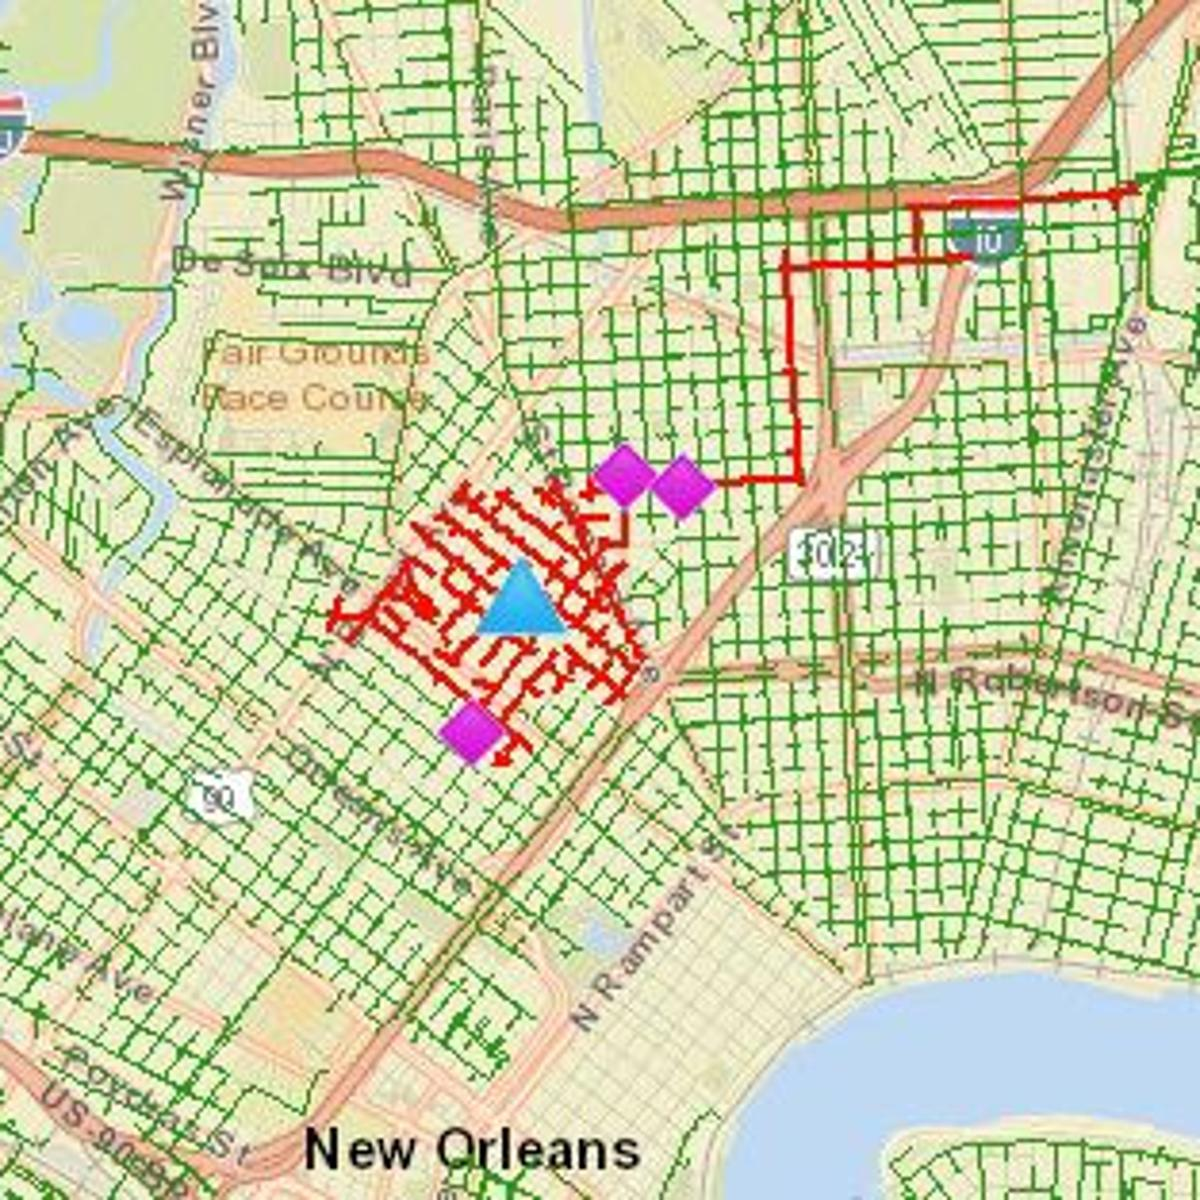 2 400 Plus Lose Power In The New Orleans 7th Ward News Nola Com